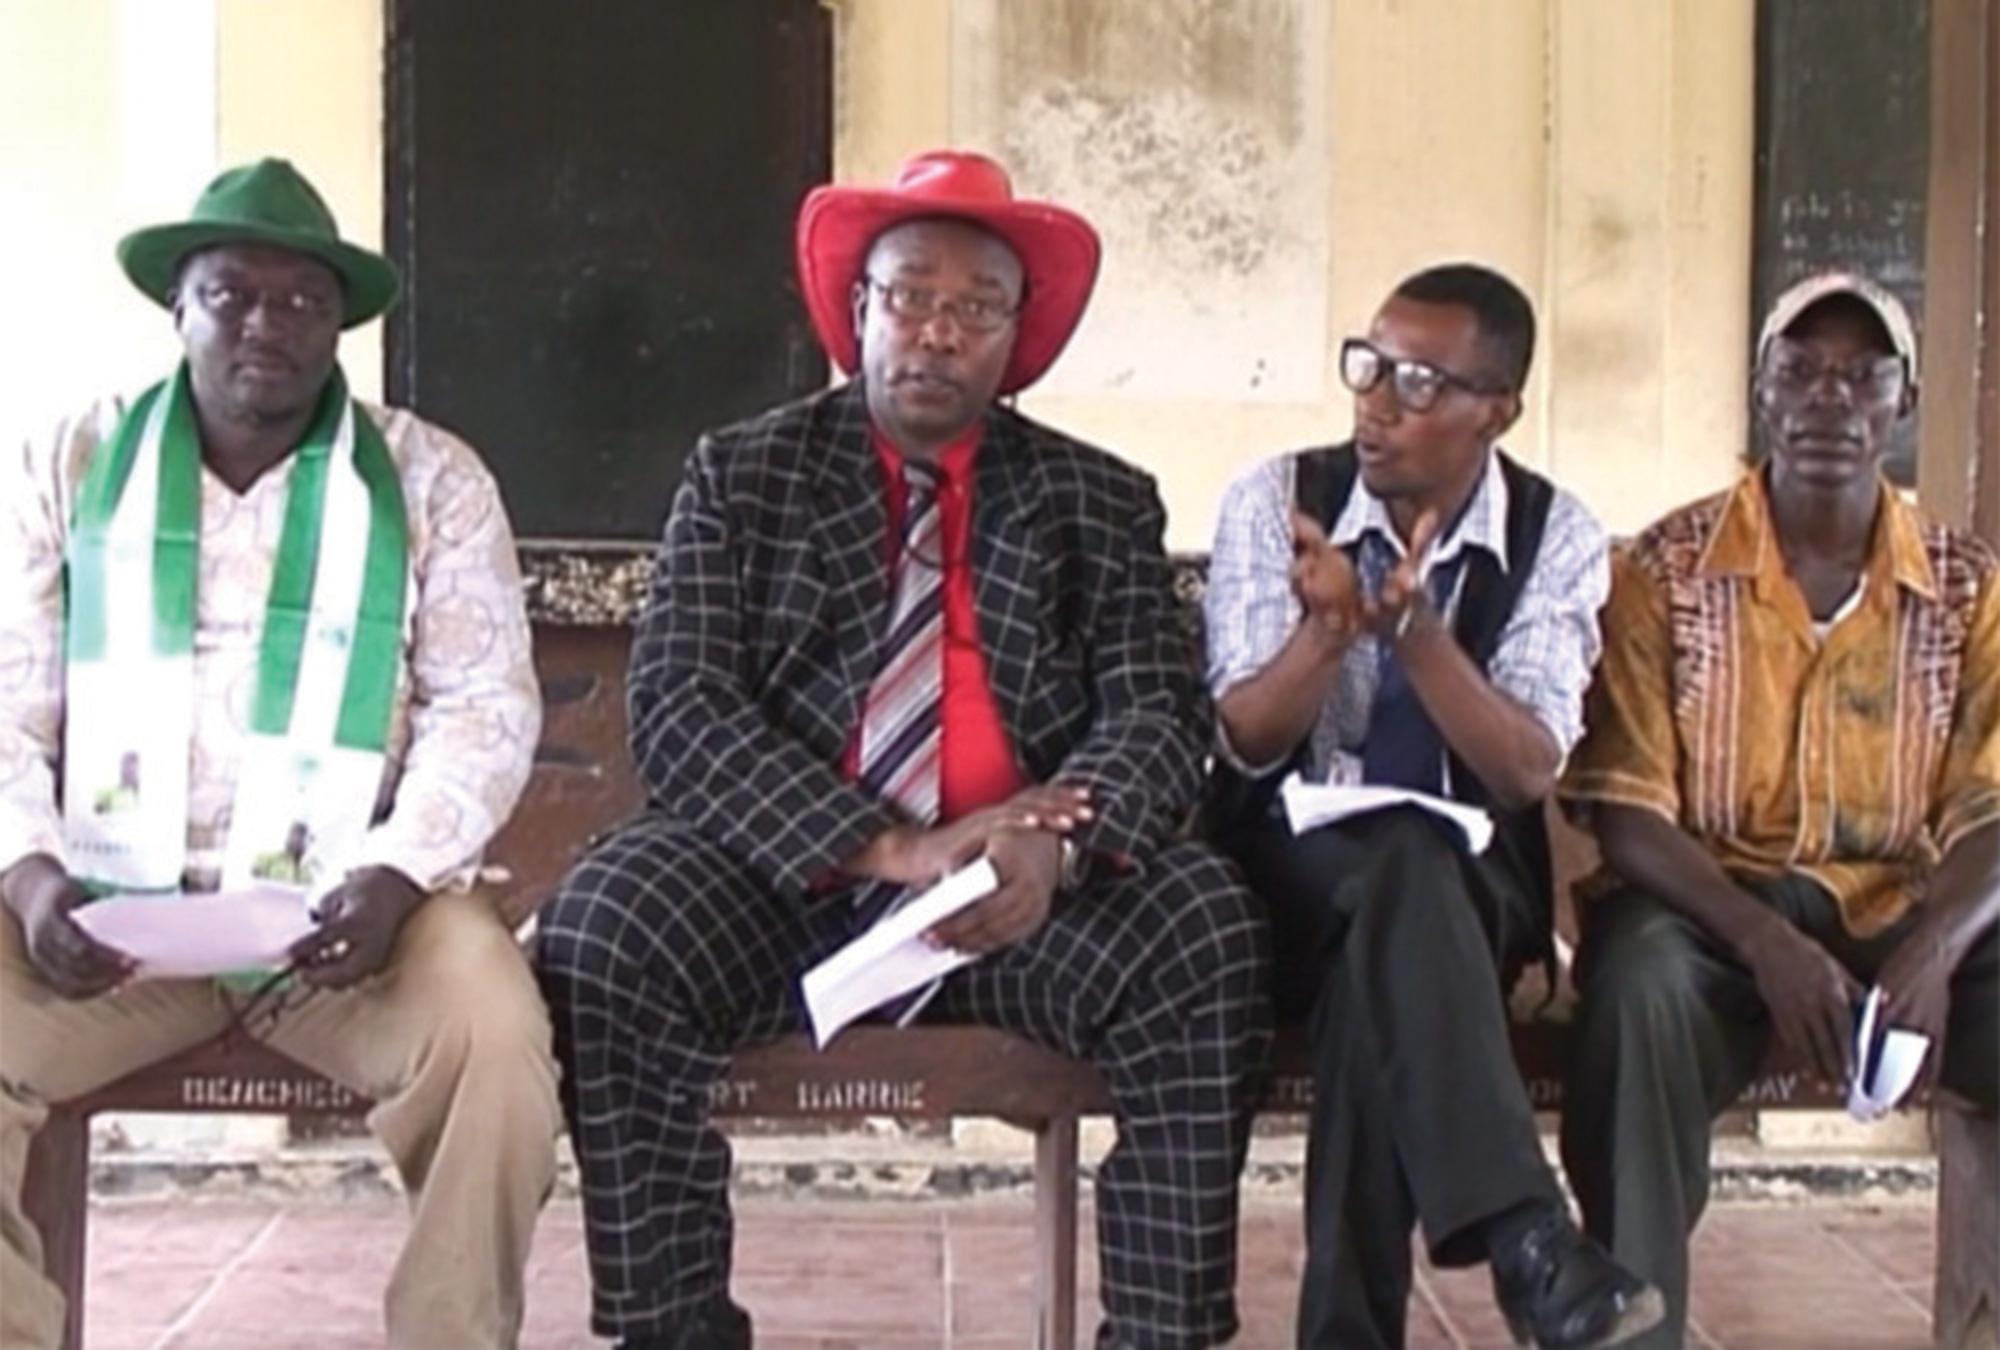 Candidates participating in a filmed debate for the 2012 parliamentary elections in Sierra Leone.